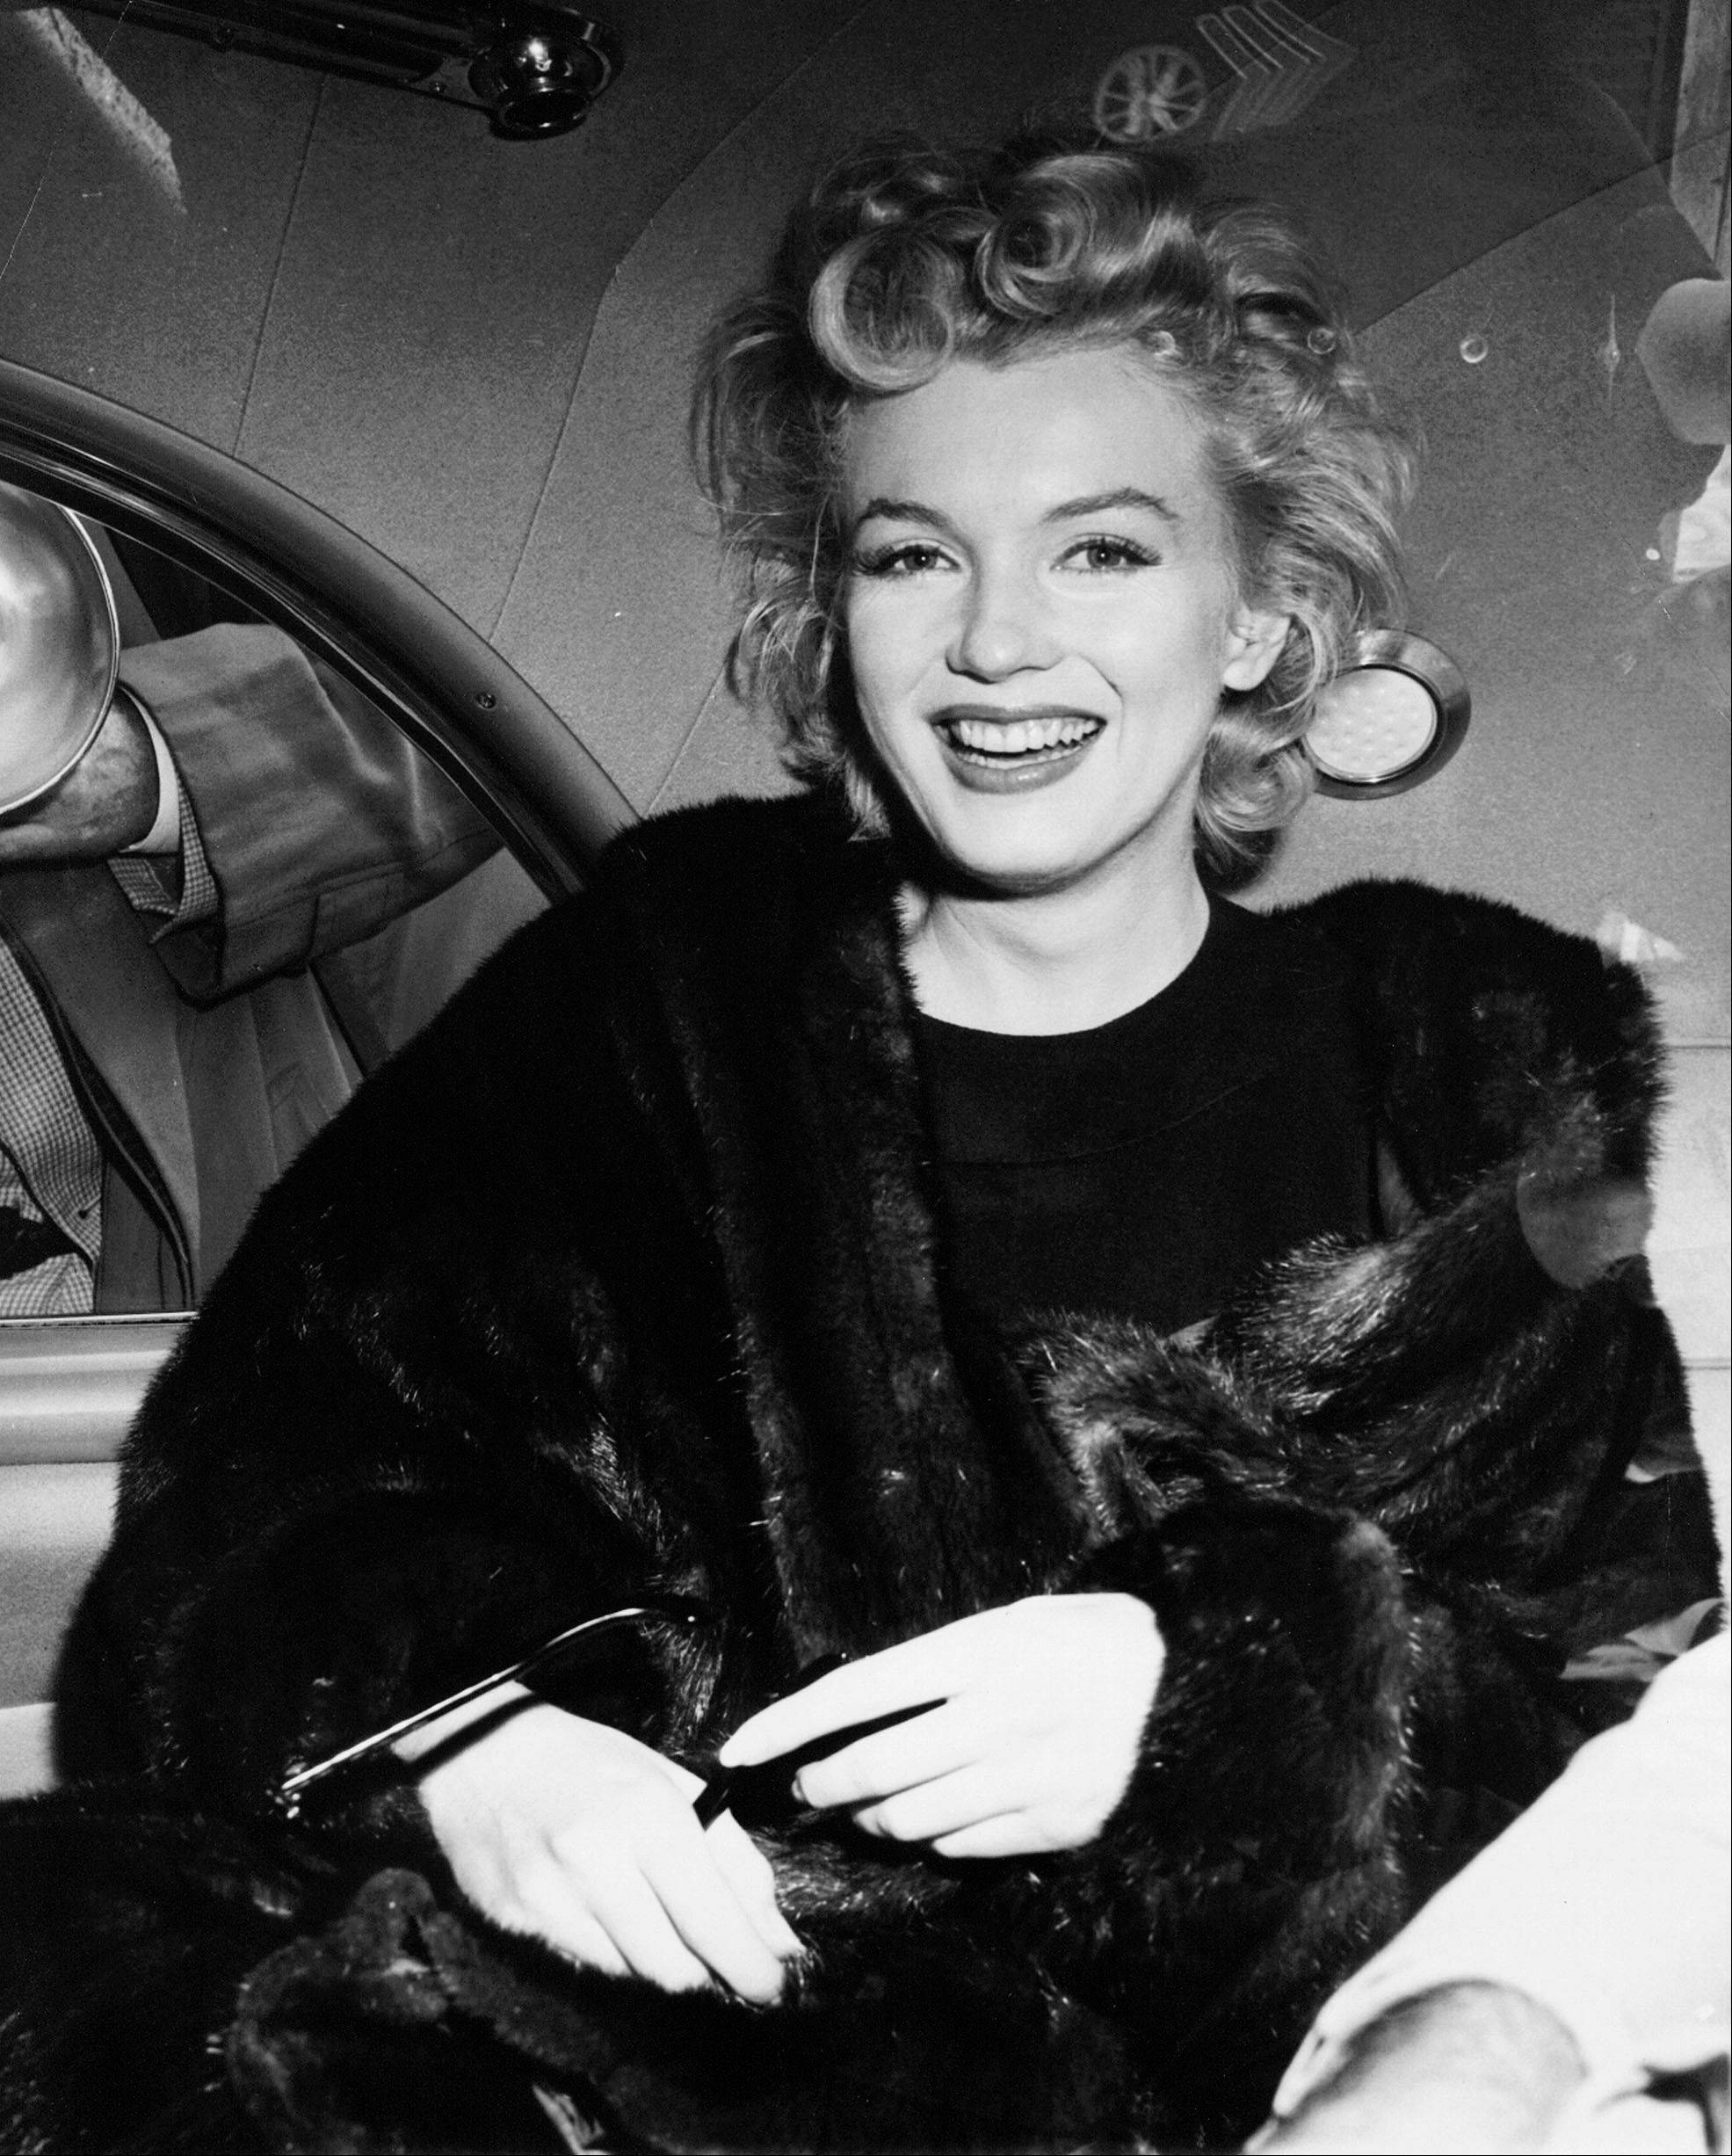 The FBI has released a new version of files it kept on actress Marilyn Monroe that reveal the names of some of her acquaintances who had drawn concern from government officials and members of her entourage over their suspected ties to communism.